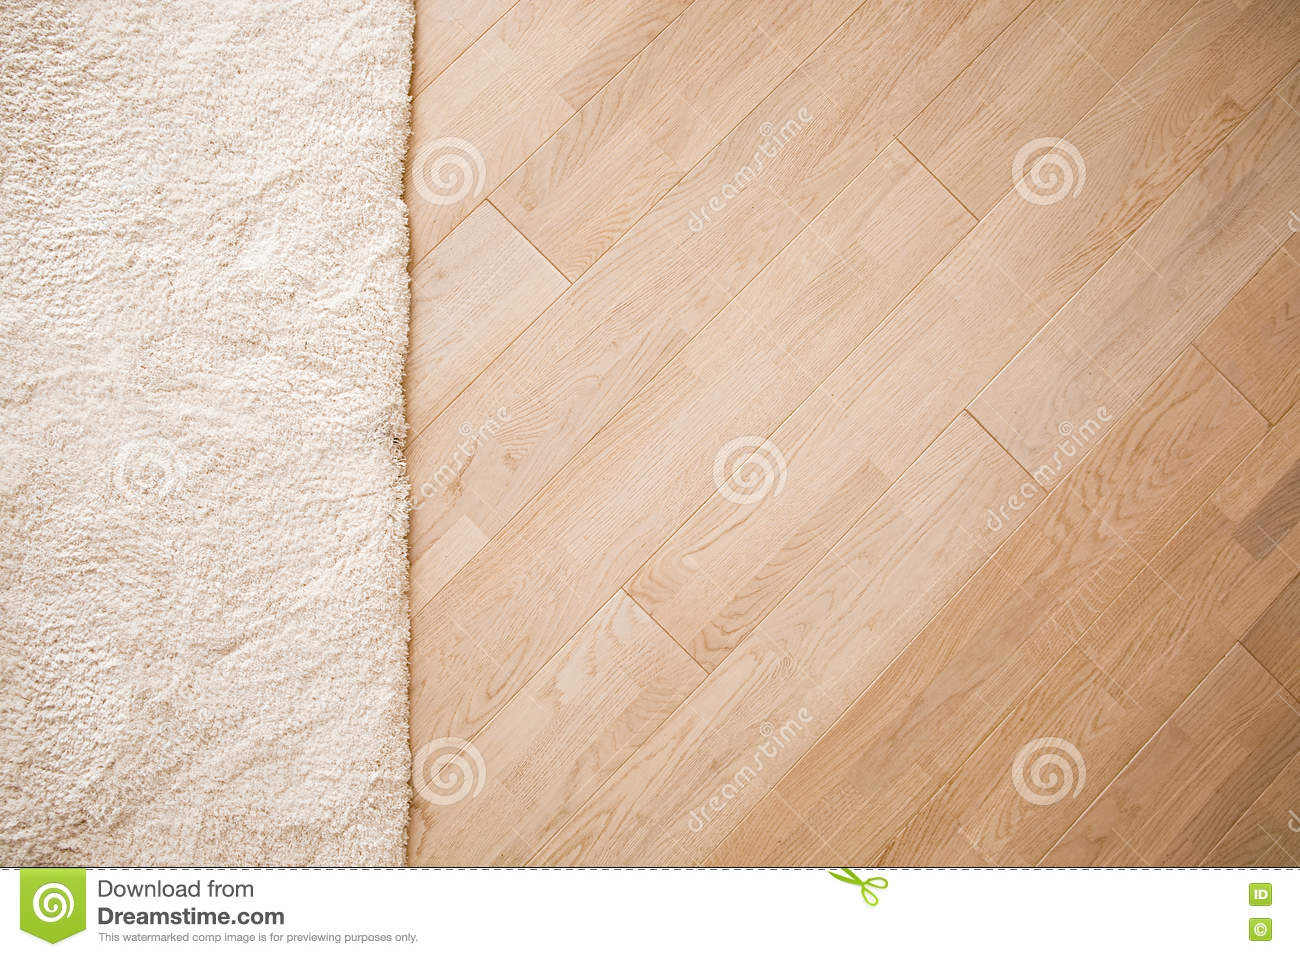 Laminate parquete floor with beige soft carpet